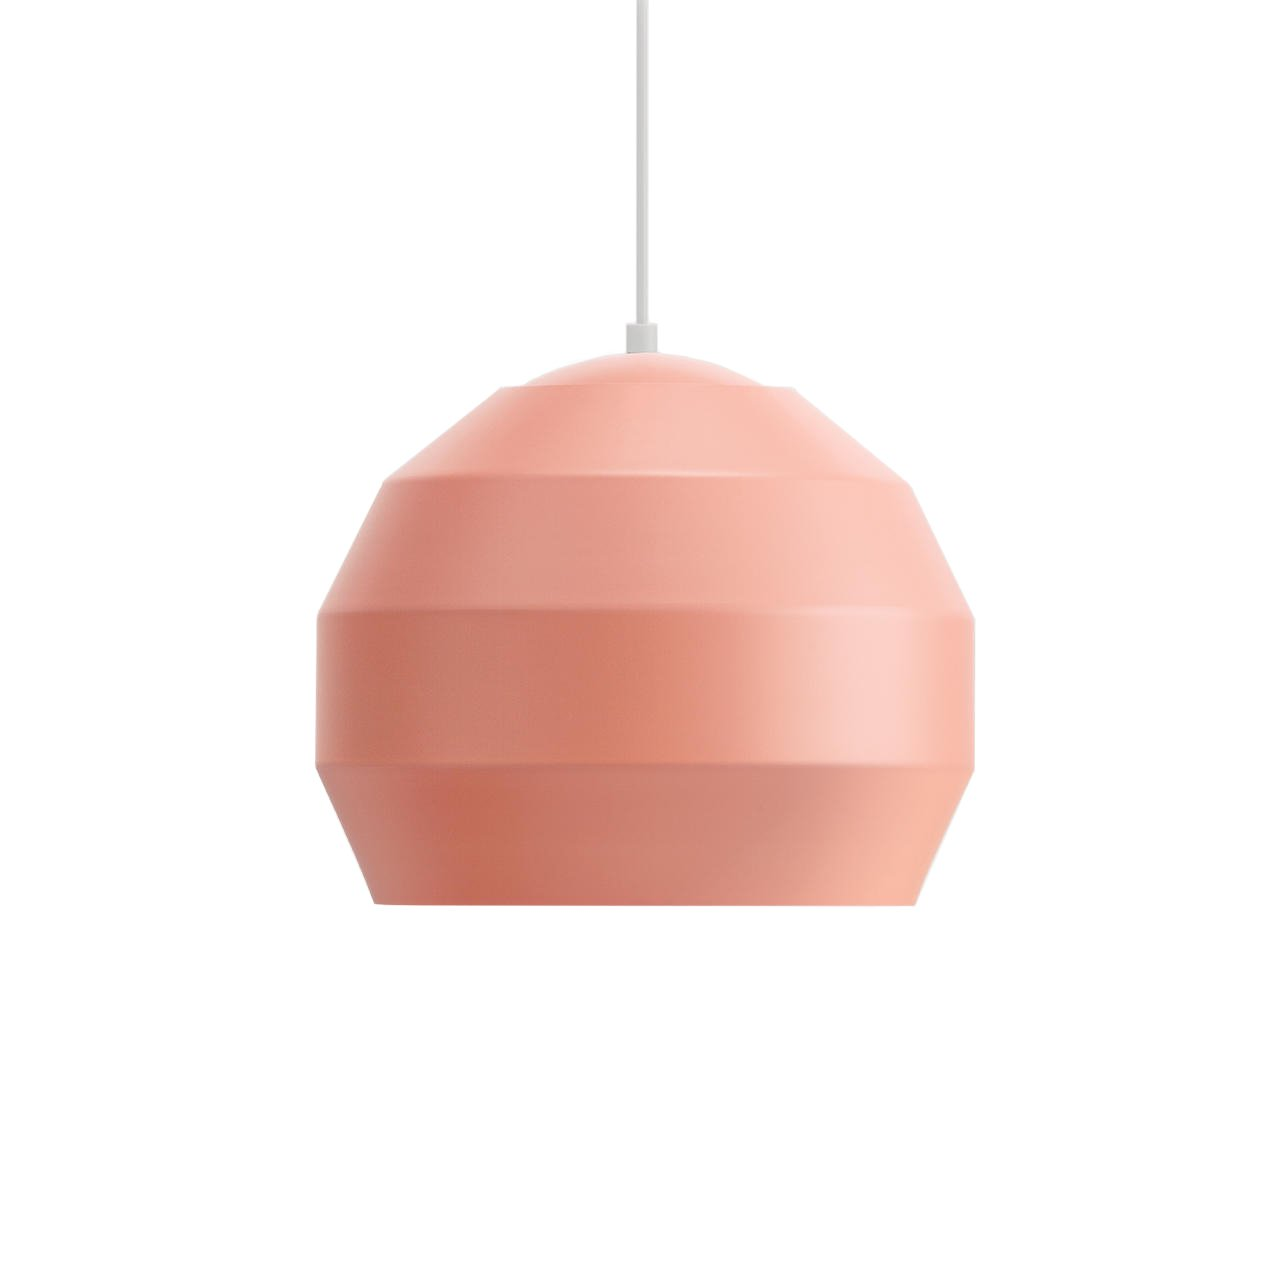 Discover the best postmodern pendant lamp products on Dwell